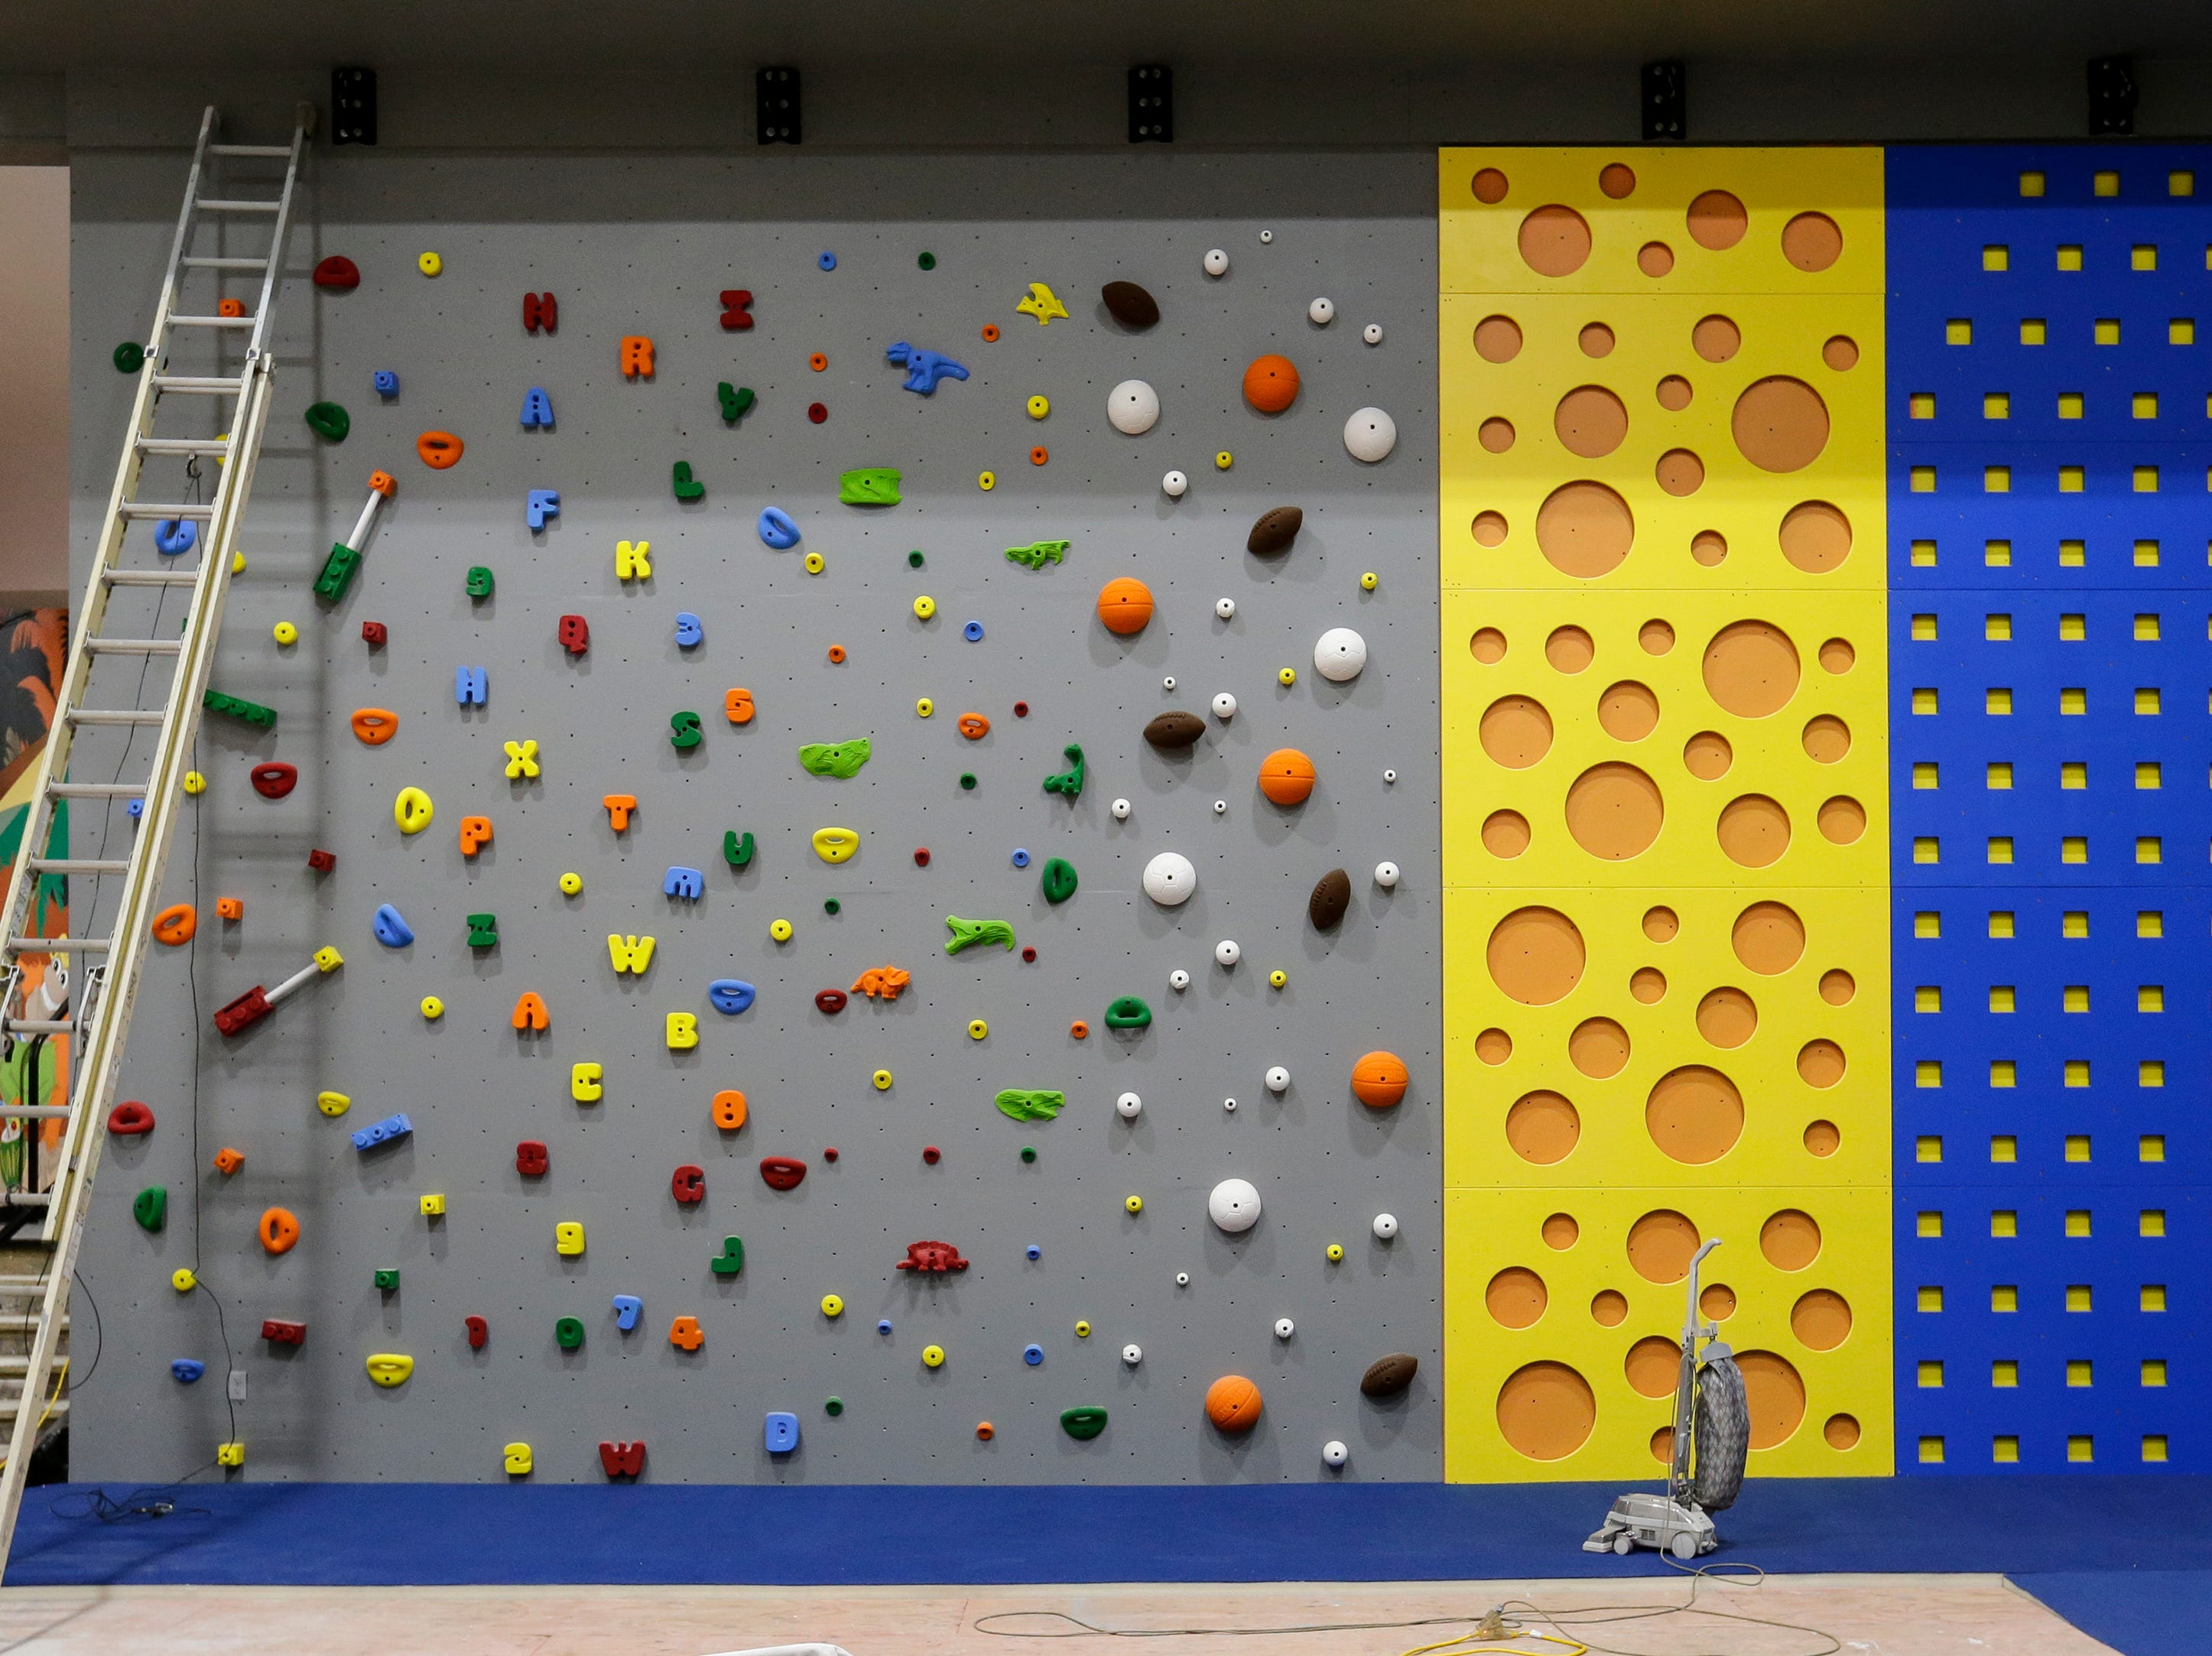 A climbing wall for younger children at Strand Adventures Wednesday, May 1, 2019, in Manitowoc, Wis. Joshua Clark/USA TODAY NETWORK-Wisconsin